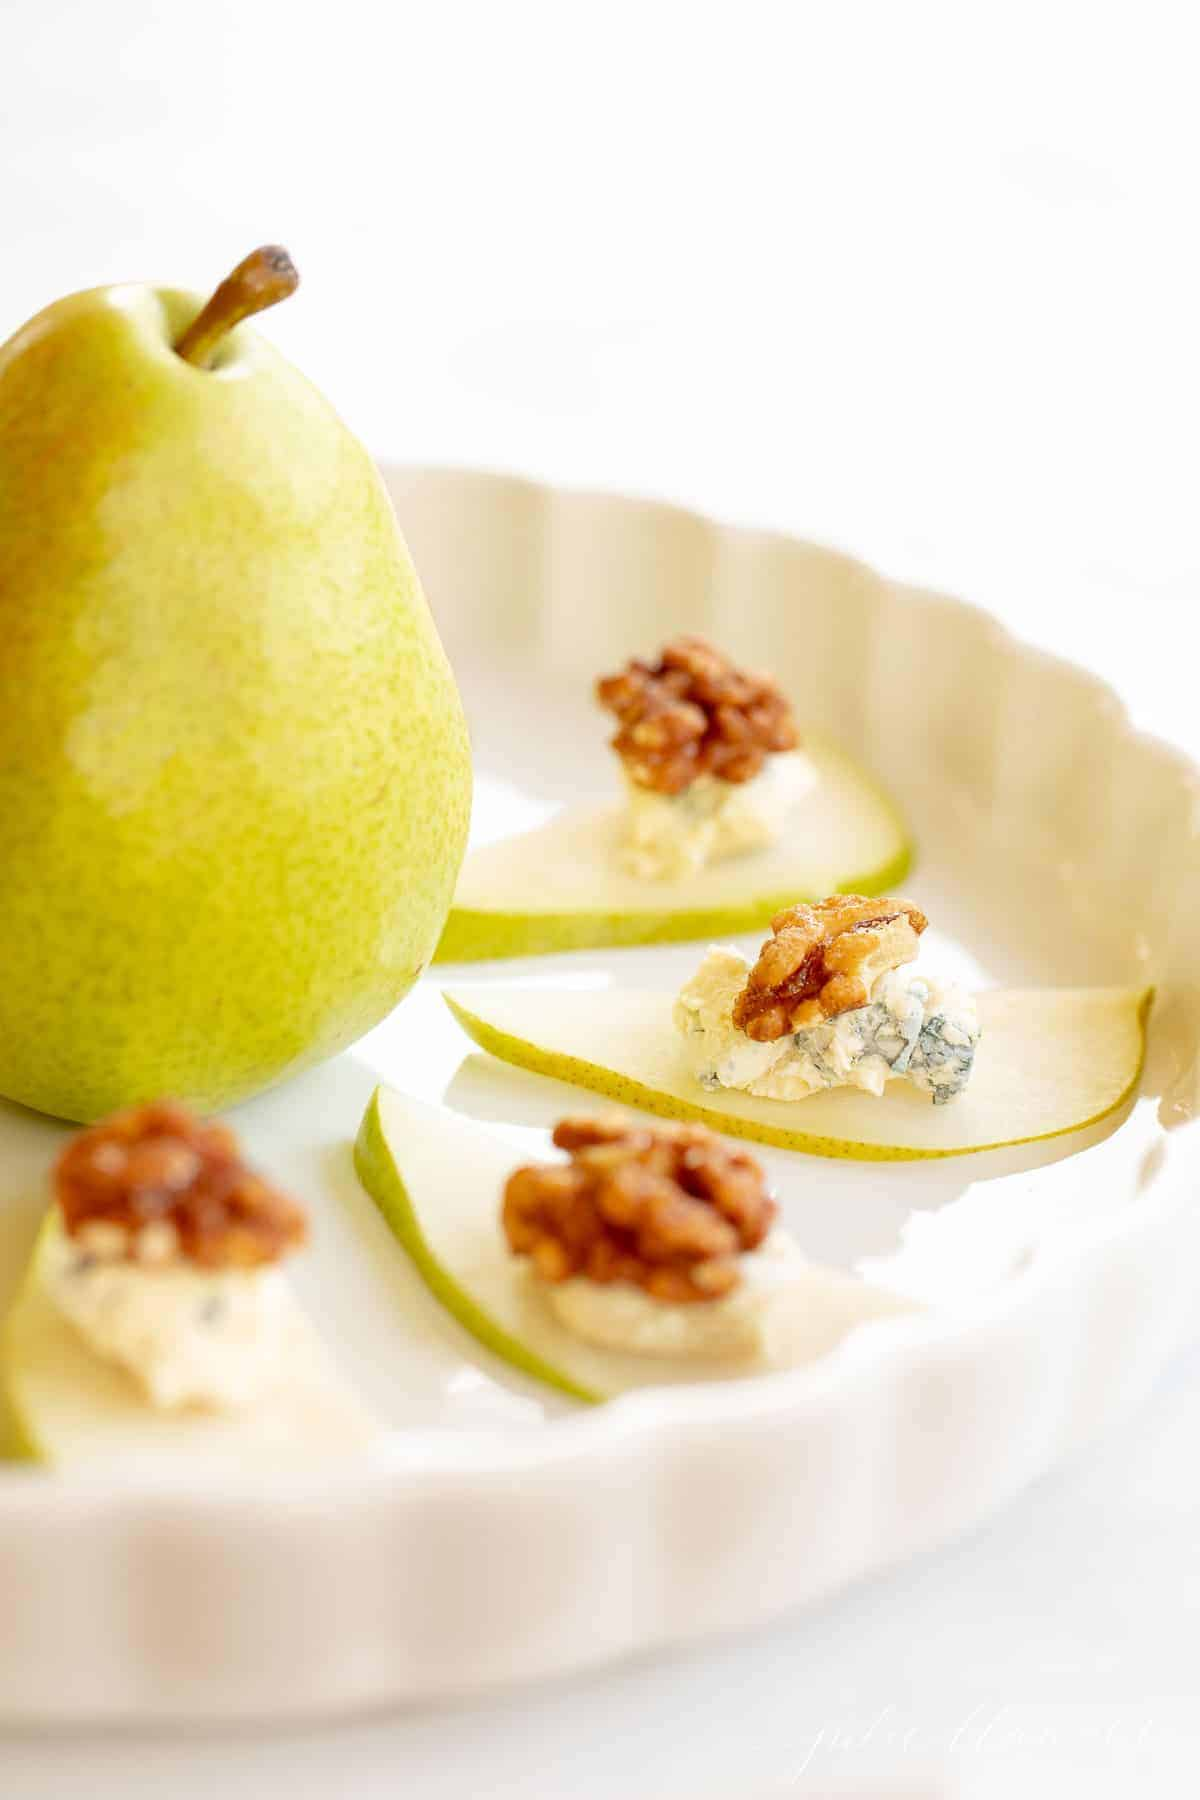 A round white tray filled with a pear and blue cheese hors d'oeuvre